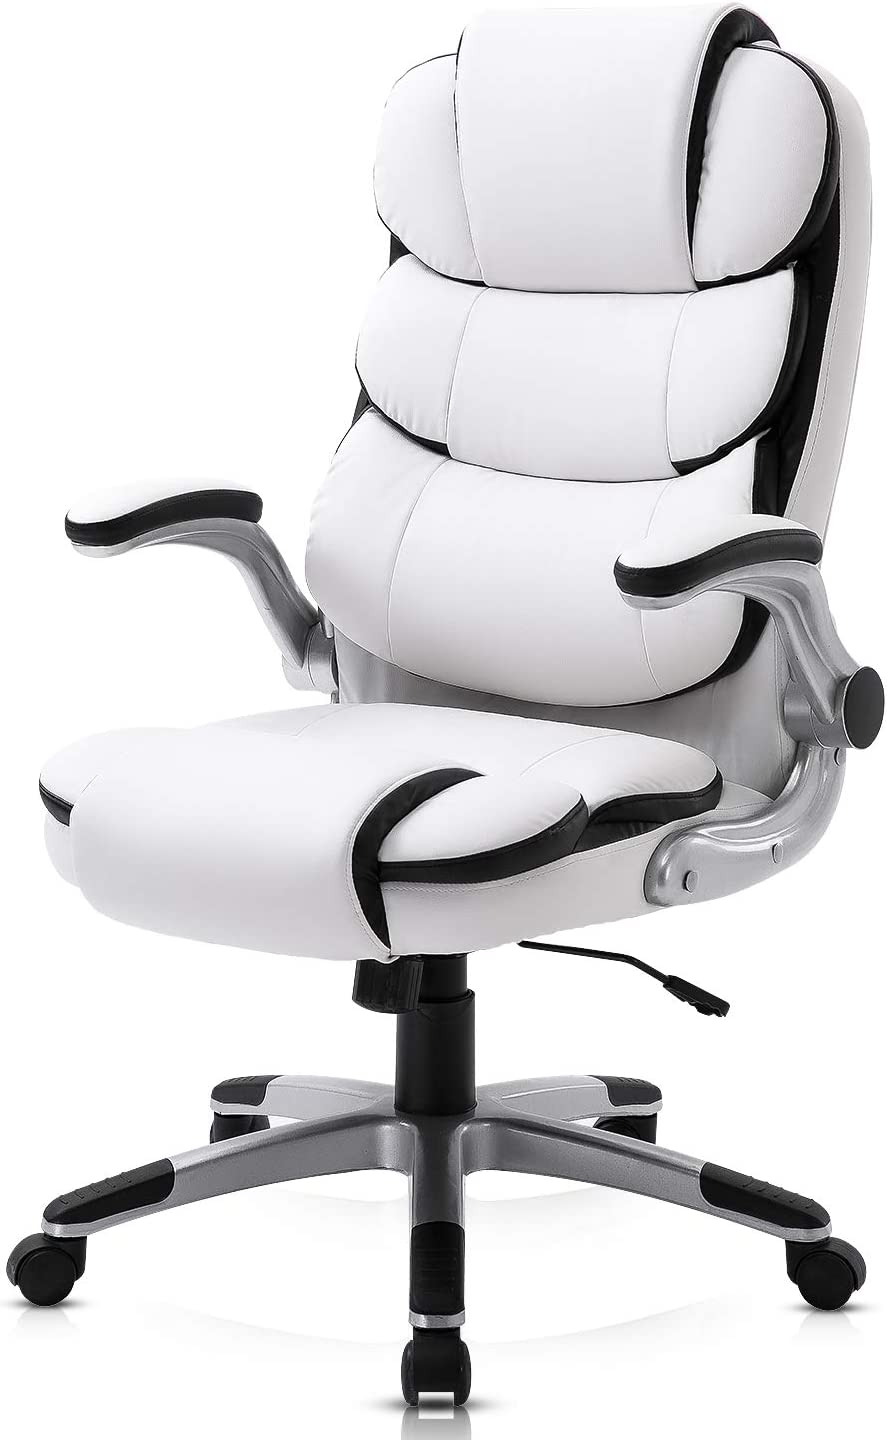 YAMASORO Ergonomic Executive Office Chair White,High Back Leather Computer Chair Flip up Arm Rests,Office Desk Chairs with Wheels for Heavy People